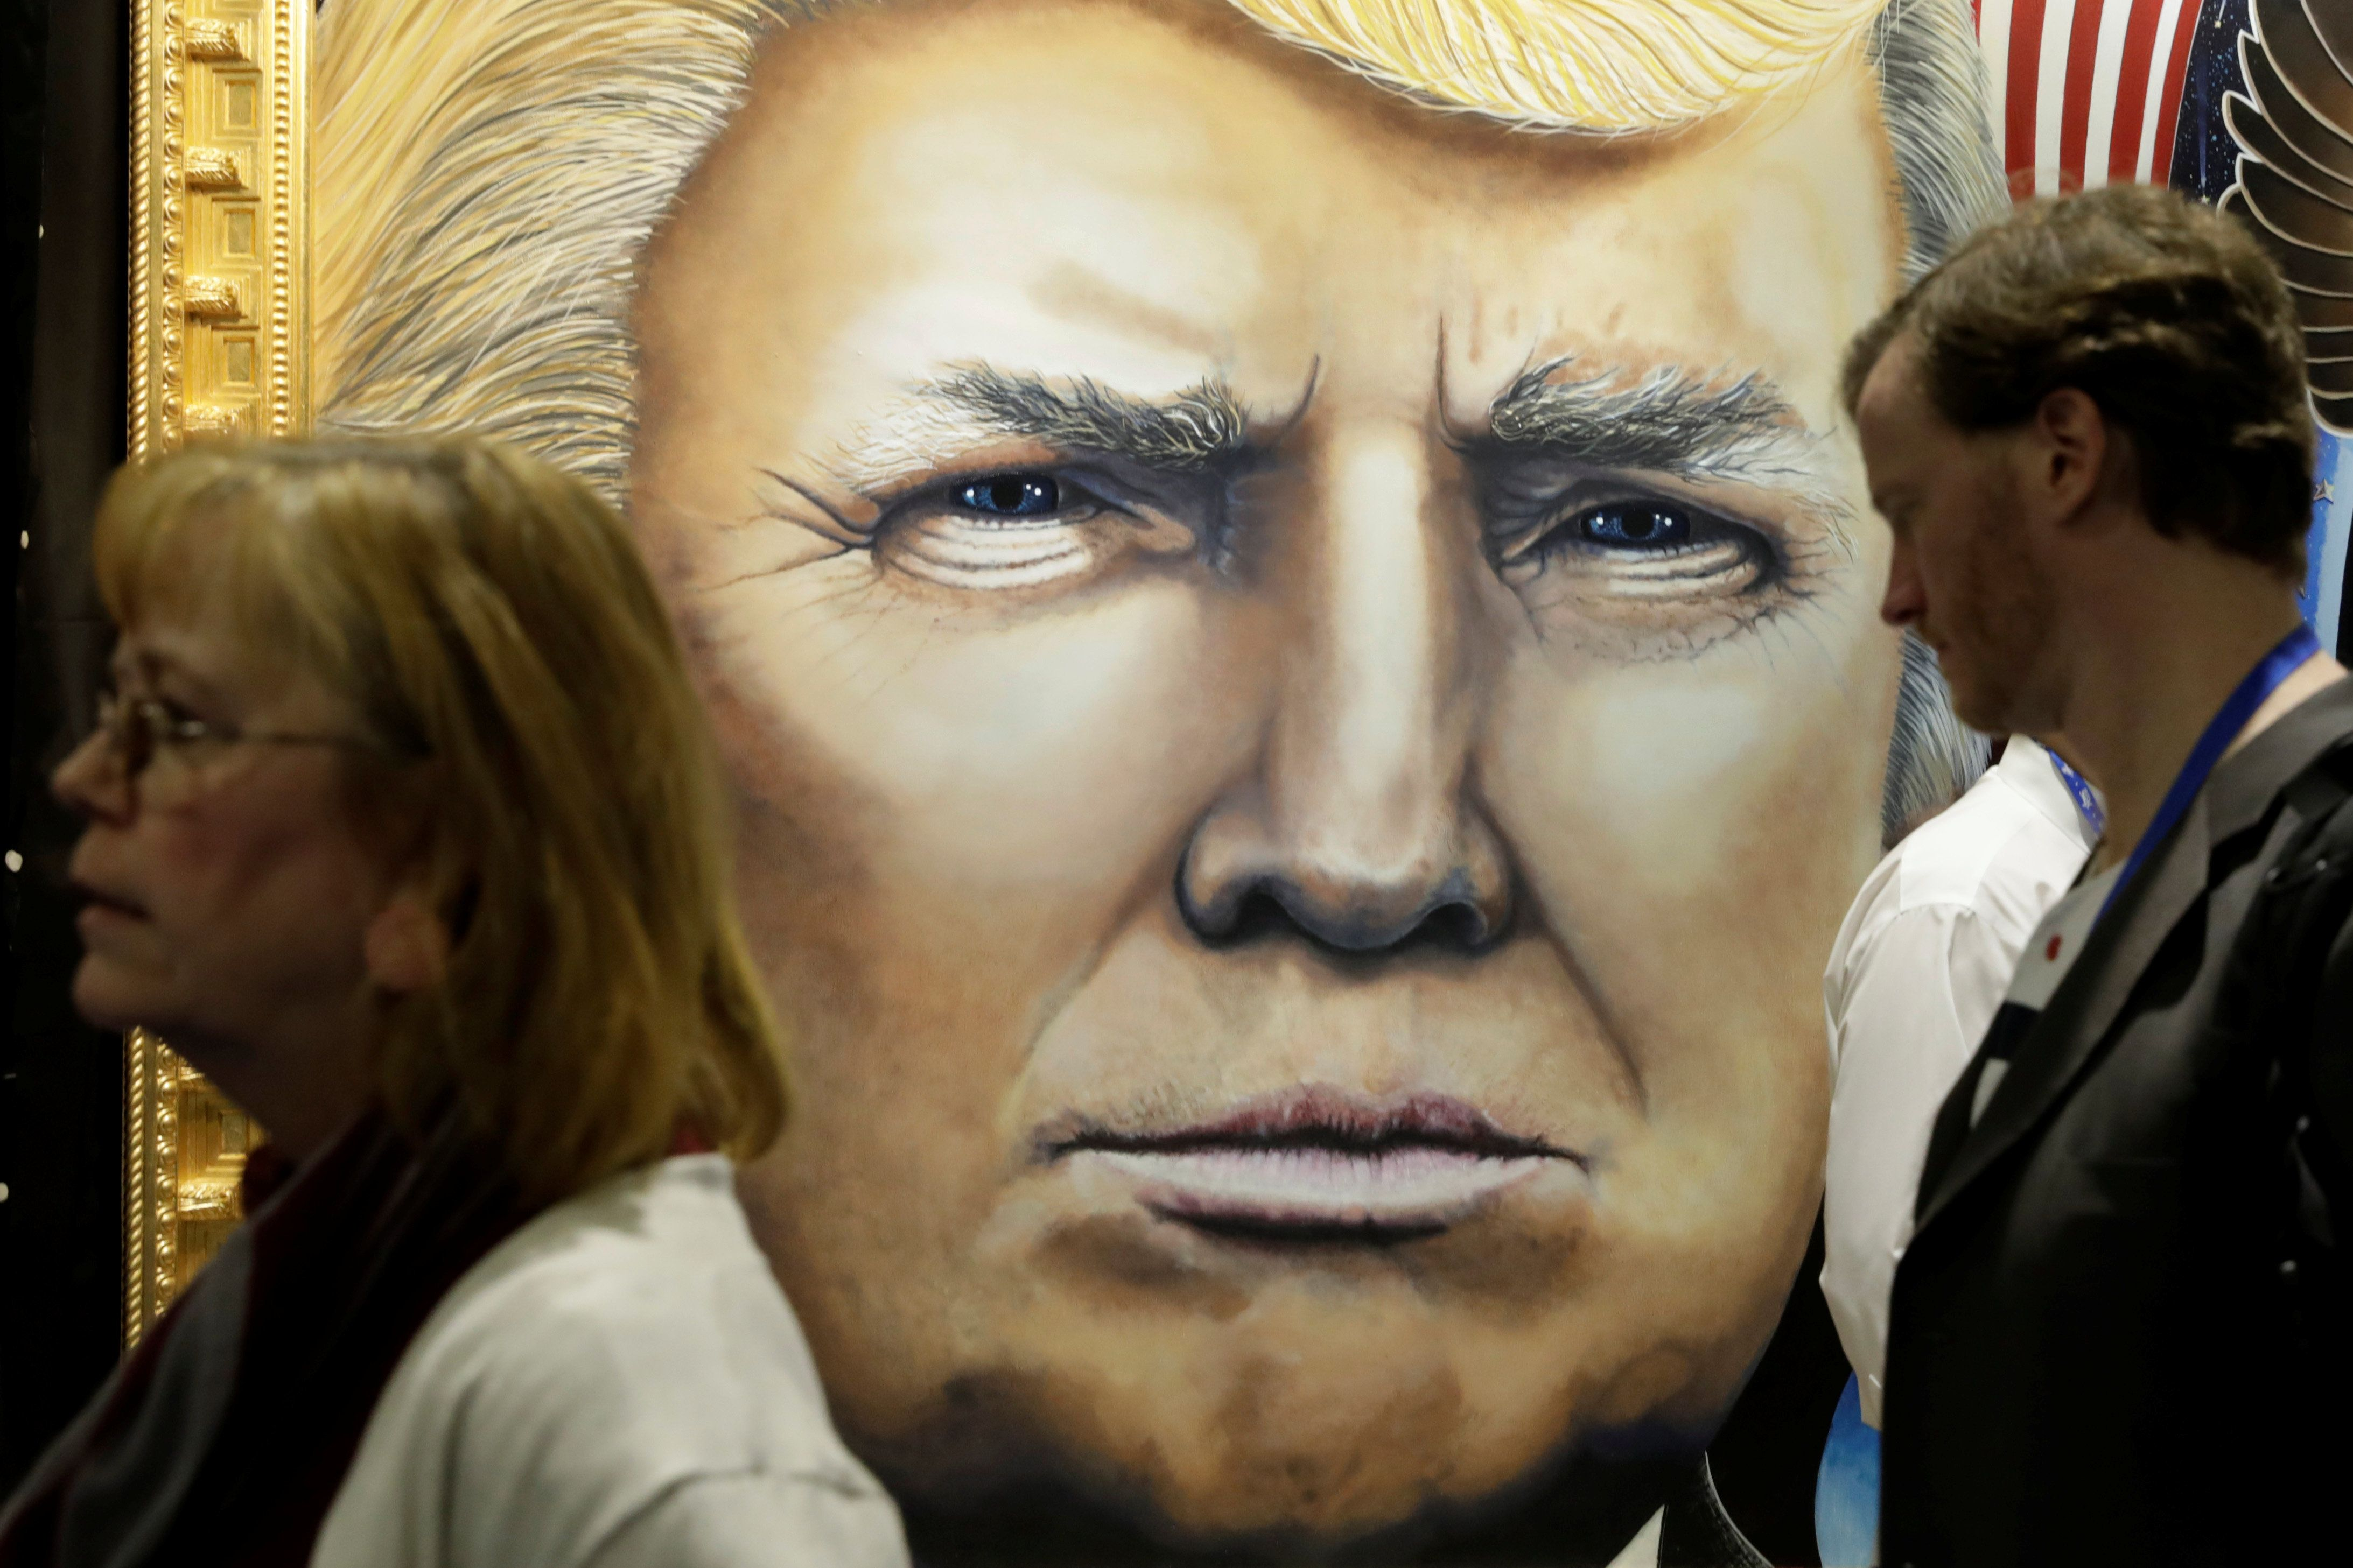 Attendees walk past a painting of U.S. Donald Trump in an exhibition hall at the Conservative Political Action Conference (CPAC) annual meeting at National Harbor near Washington, U.S., March 1, 2019. REUTERS/Yuri Gripas